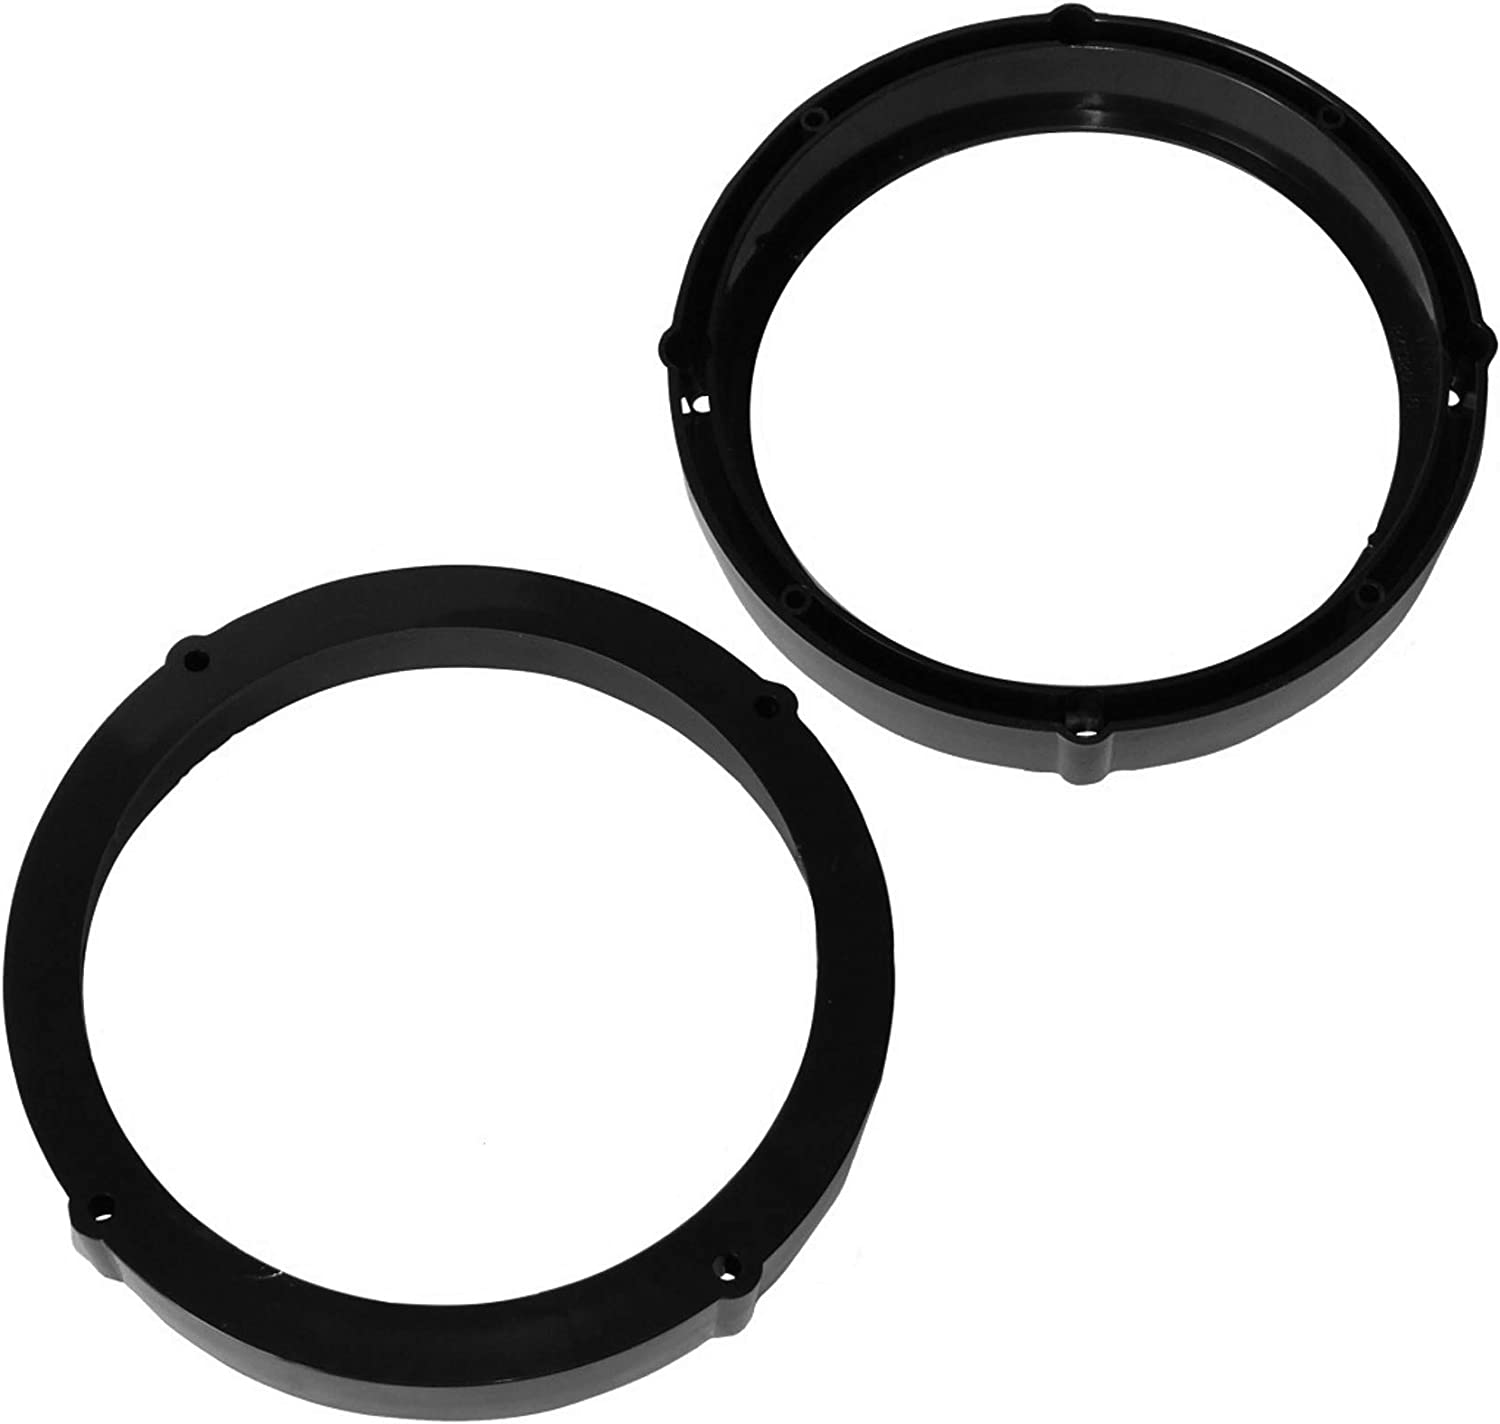 Aerzetix 2 pcs Set of Ring Sound Speaker Supports Adapter Holders for 165 mm Rear Car Audio Speakers